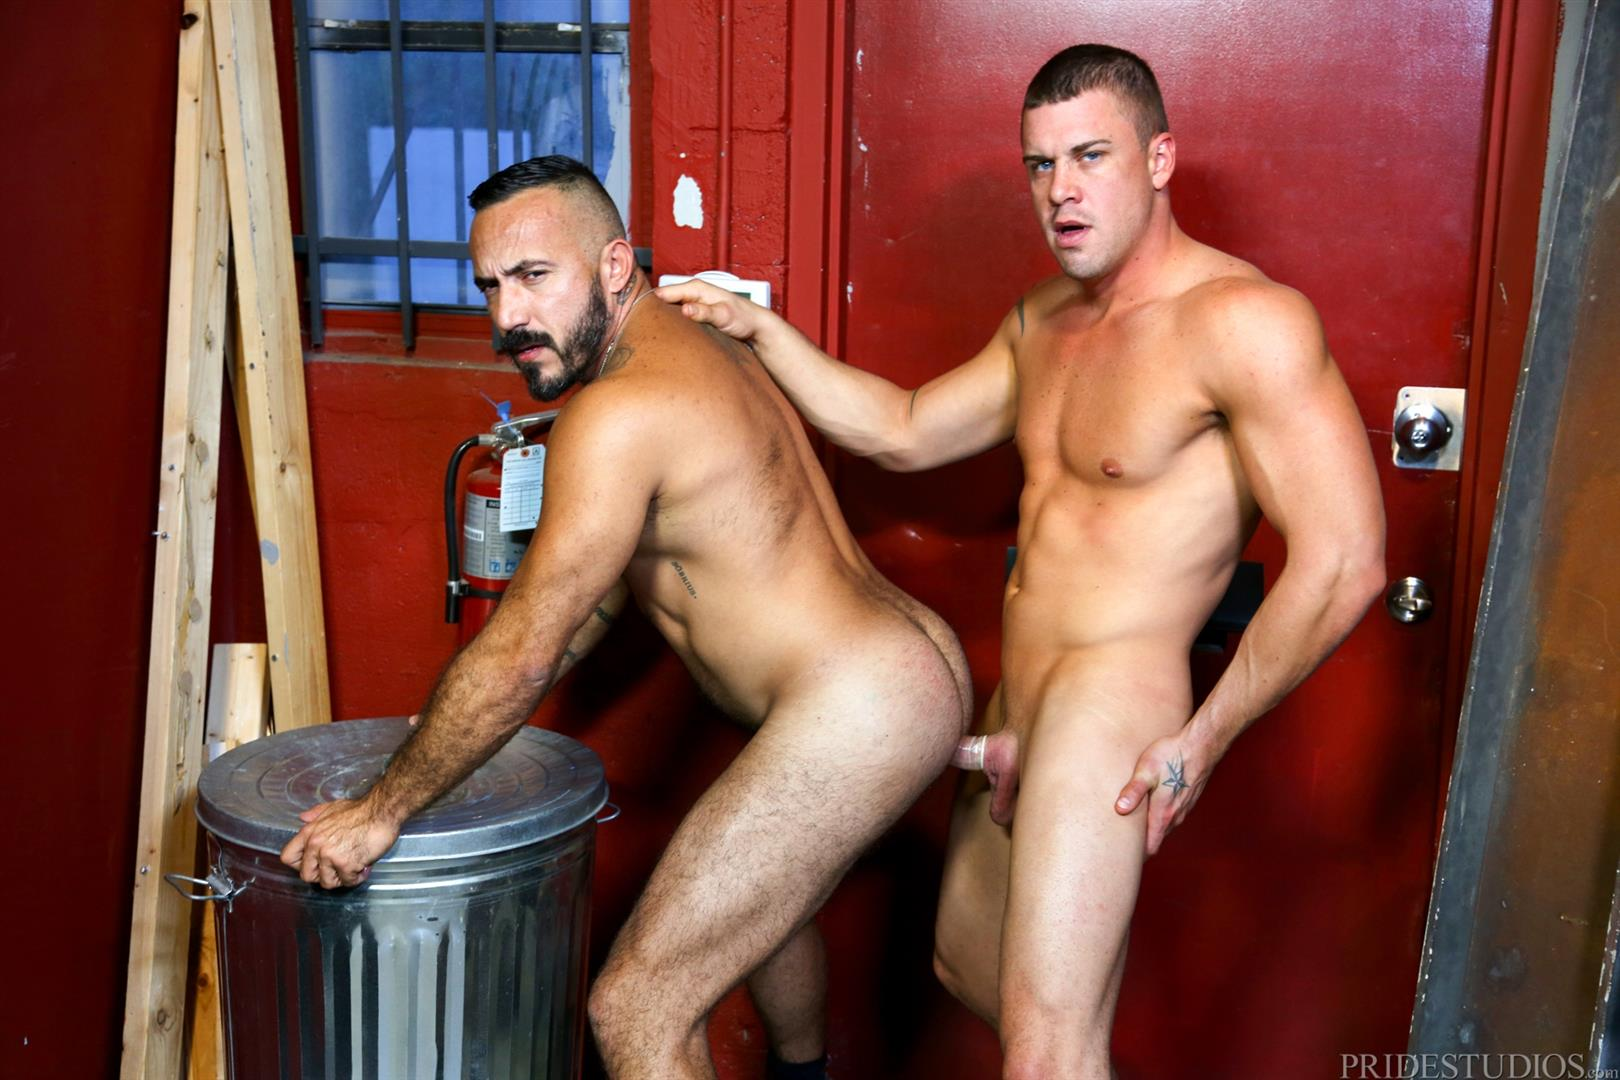 Men Over 30 Darin Silvers and Alessio Romero Hitchhiker Fucking Hairy Ass Amateur Gay Porn 12 Alessio Romero Picks Up A Hitchhiker And Gets Fucked In The Ass